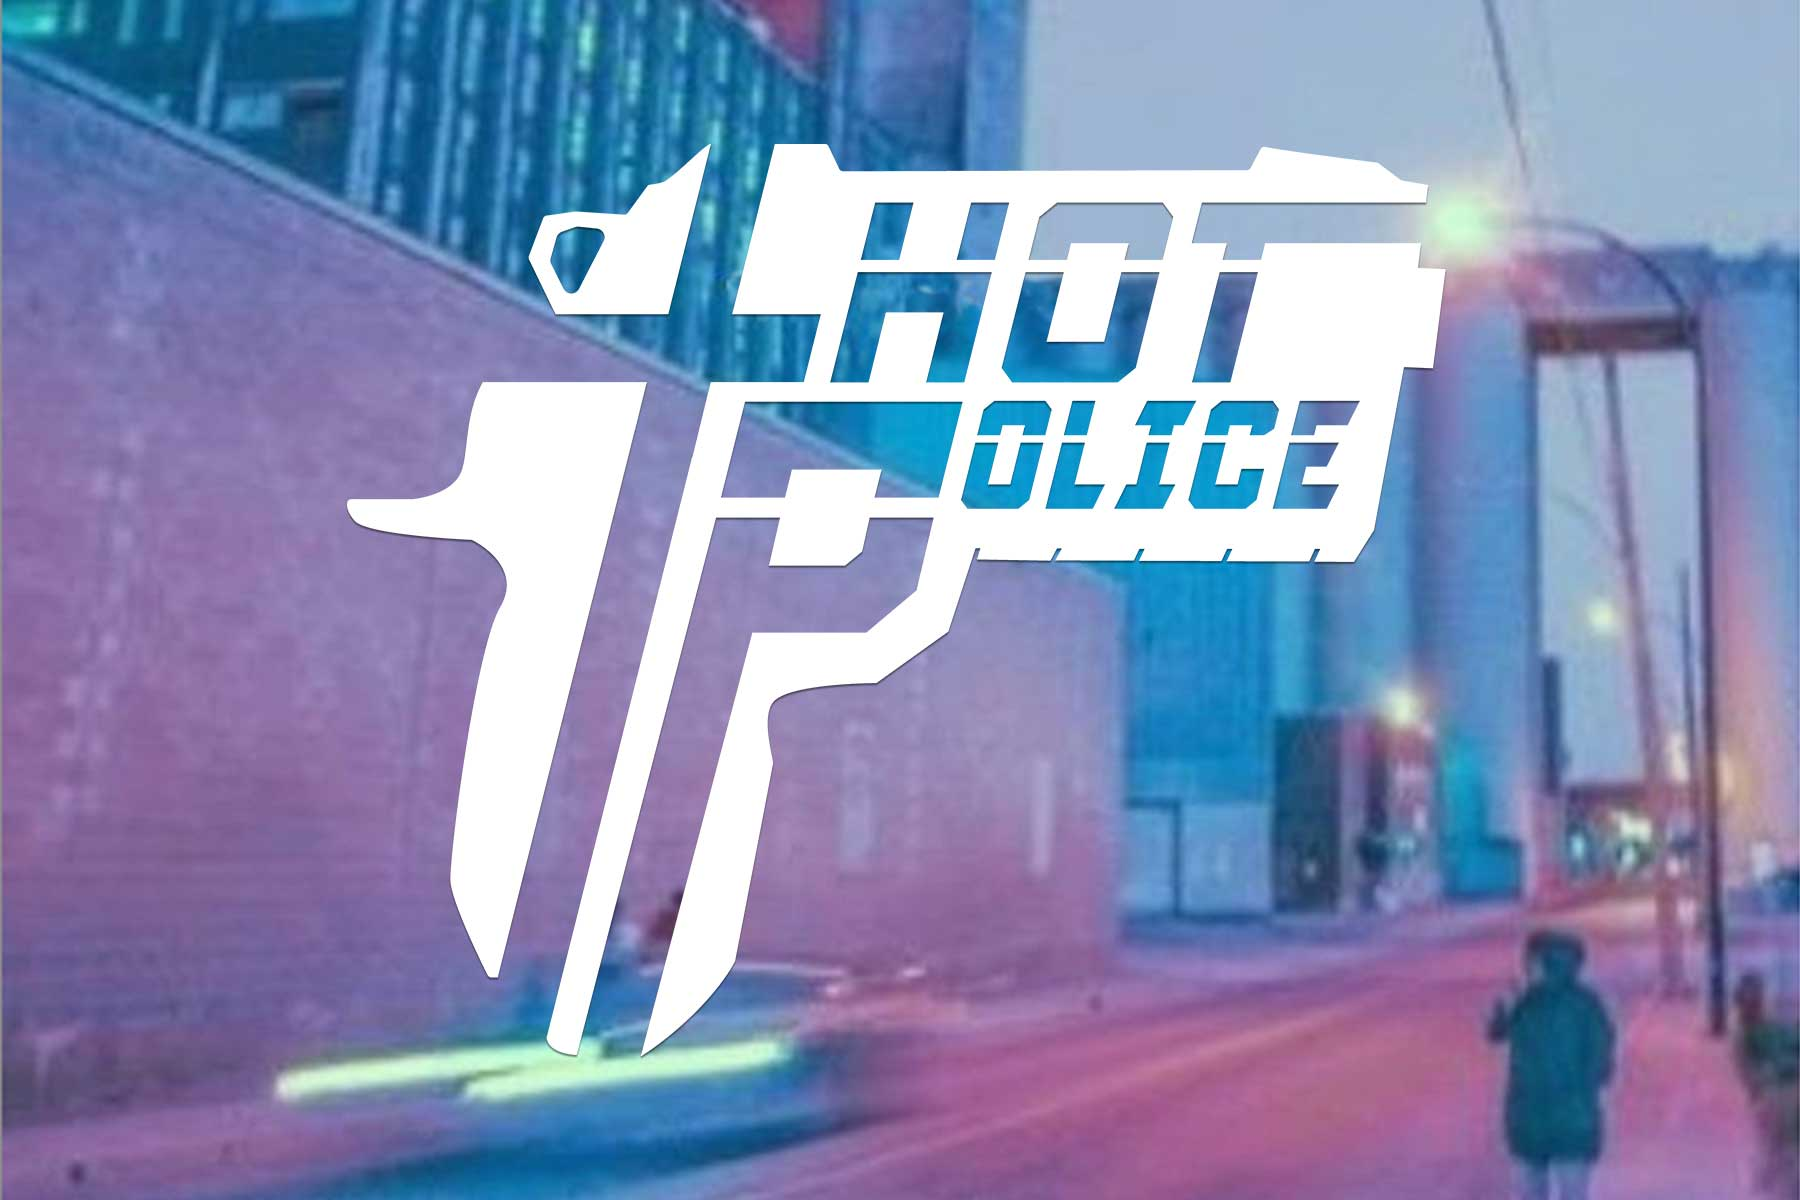 THOT Police - Collaboration with Ryan Tram (Yung Kamaji) for Alberta based music collective THOT Police